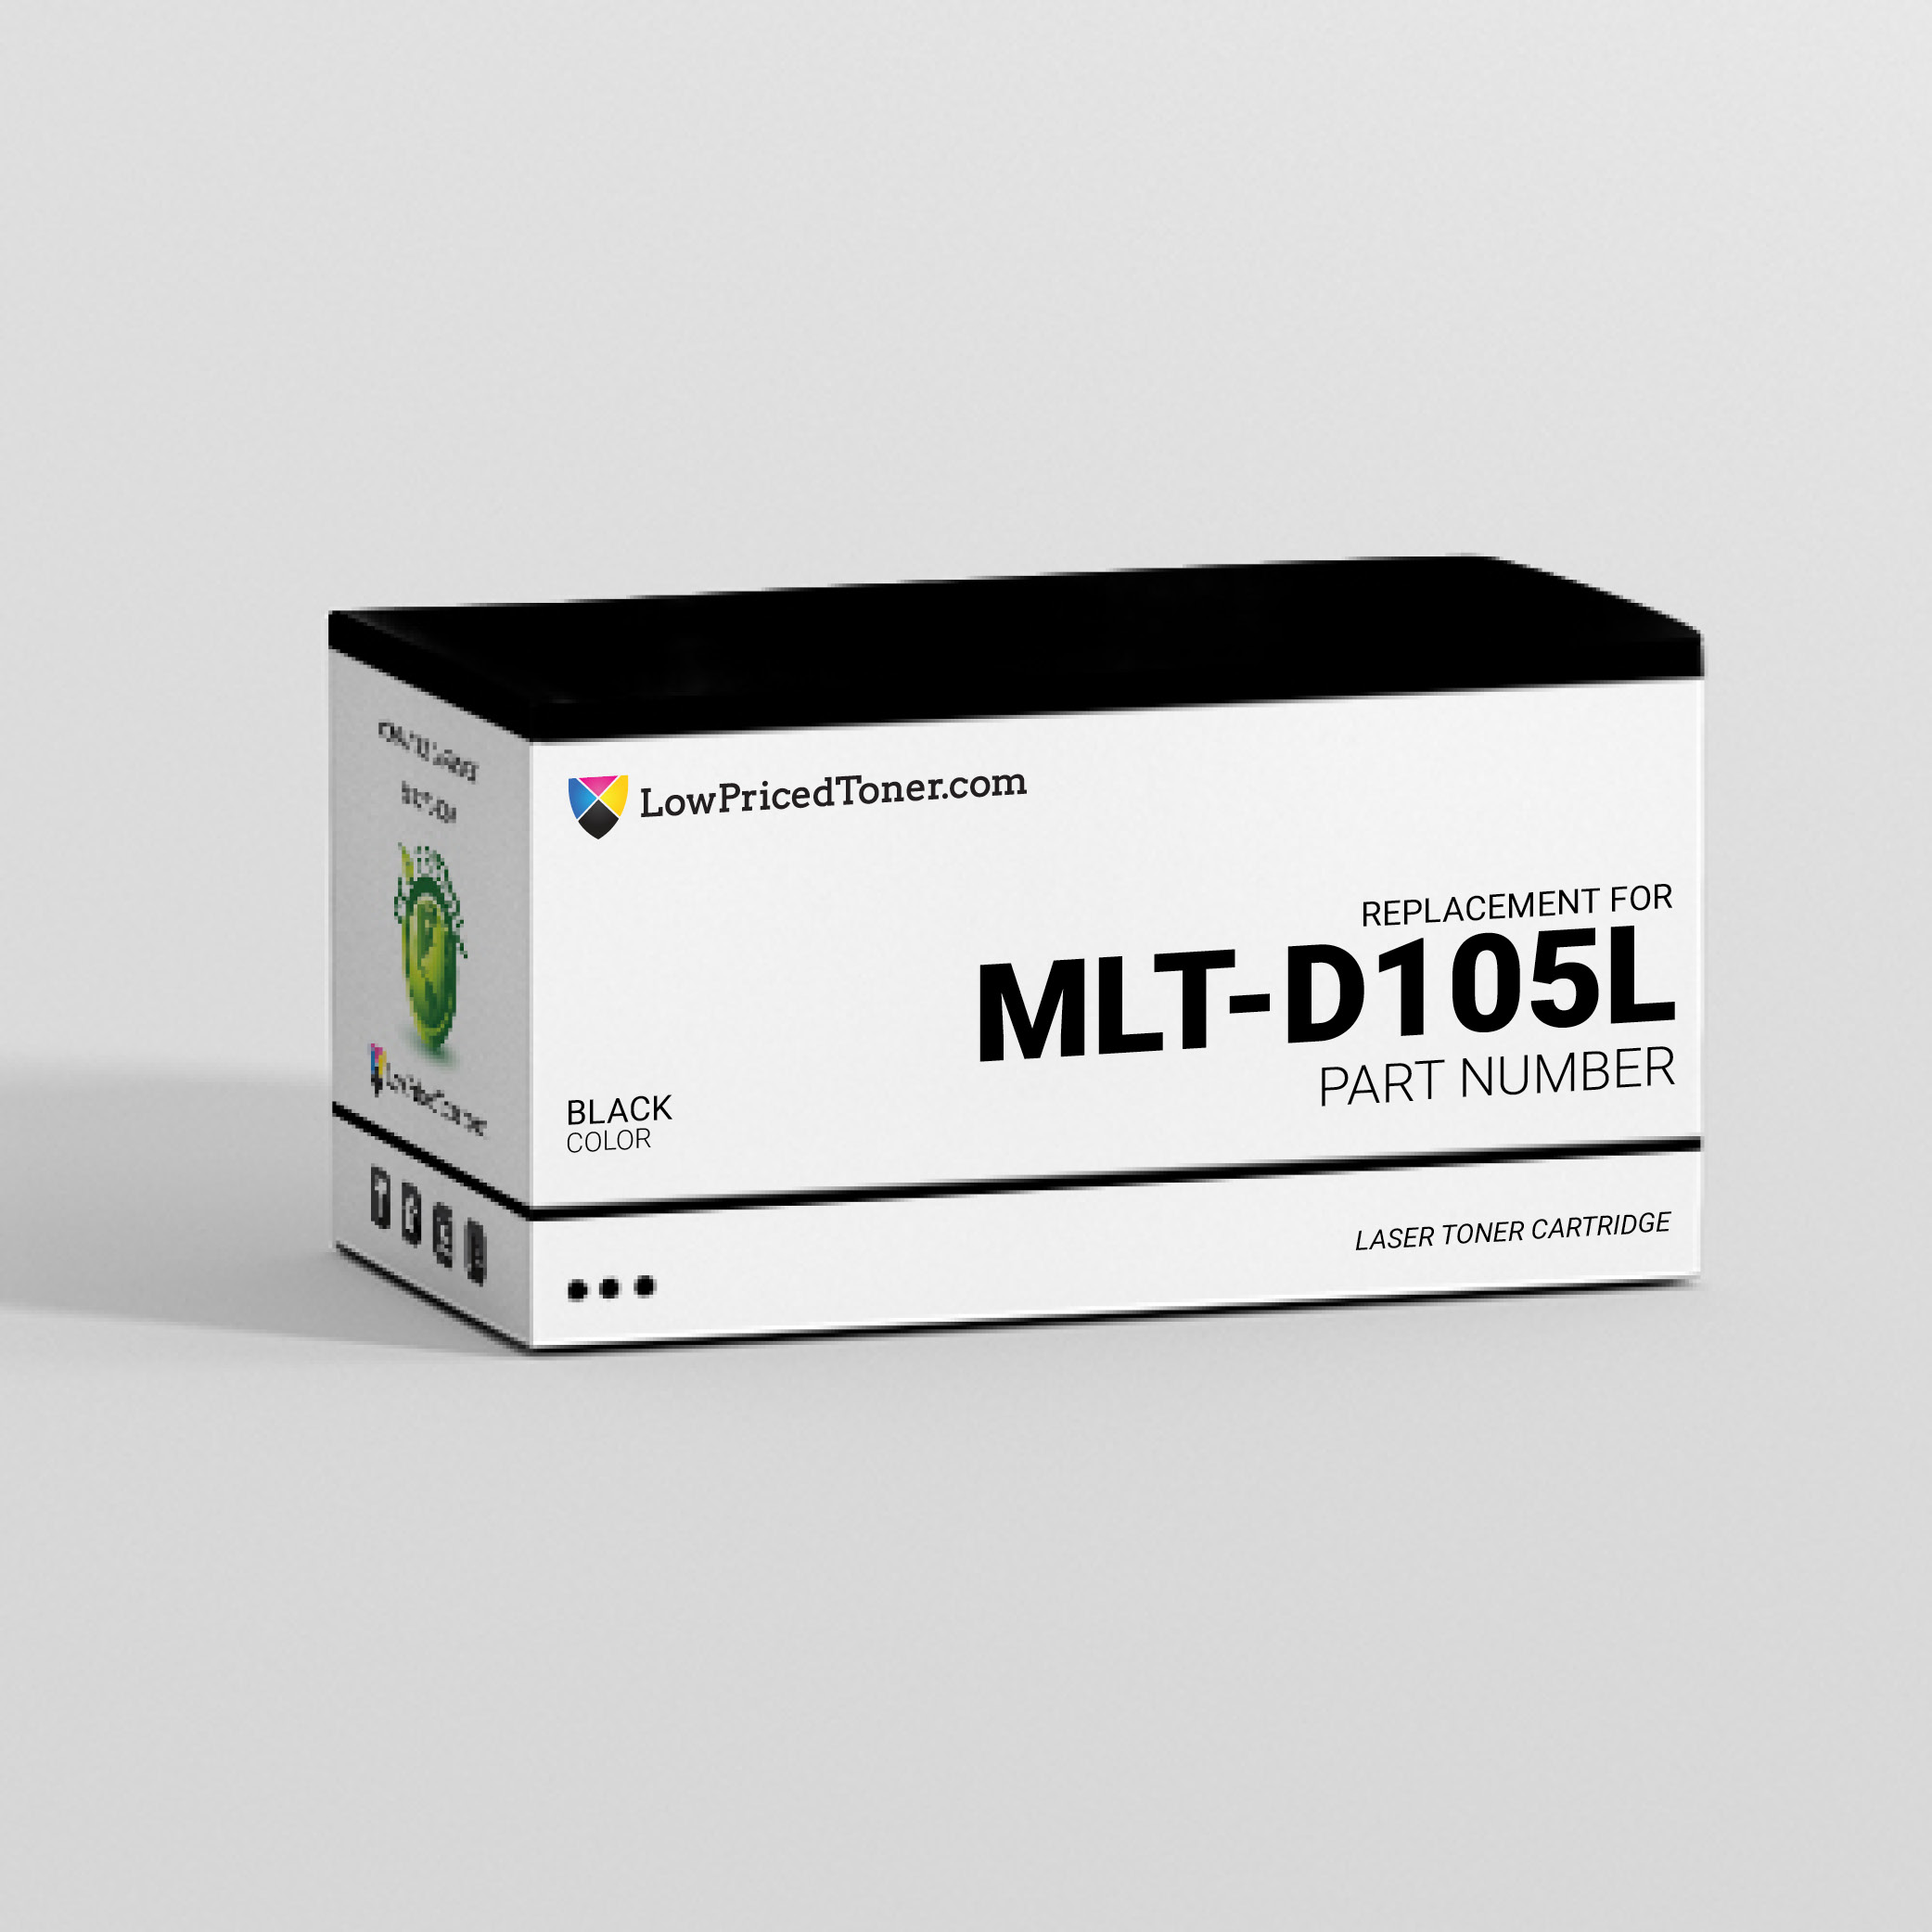 Samsung MLT-D105L Compatible Black Laser Toner Cartridge